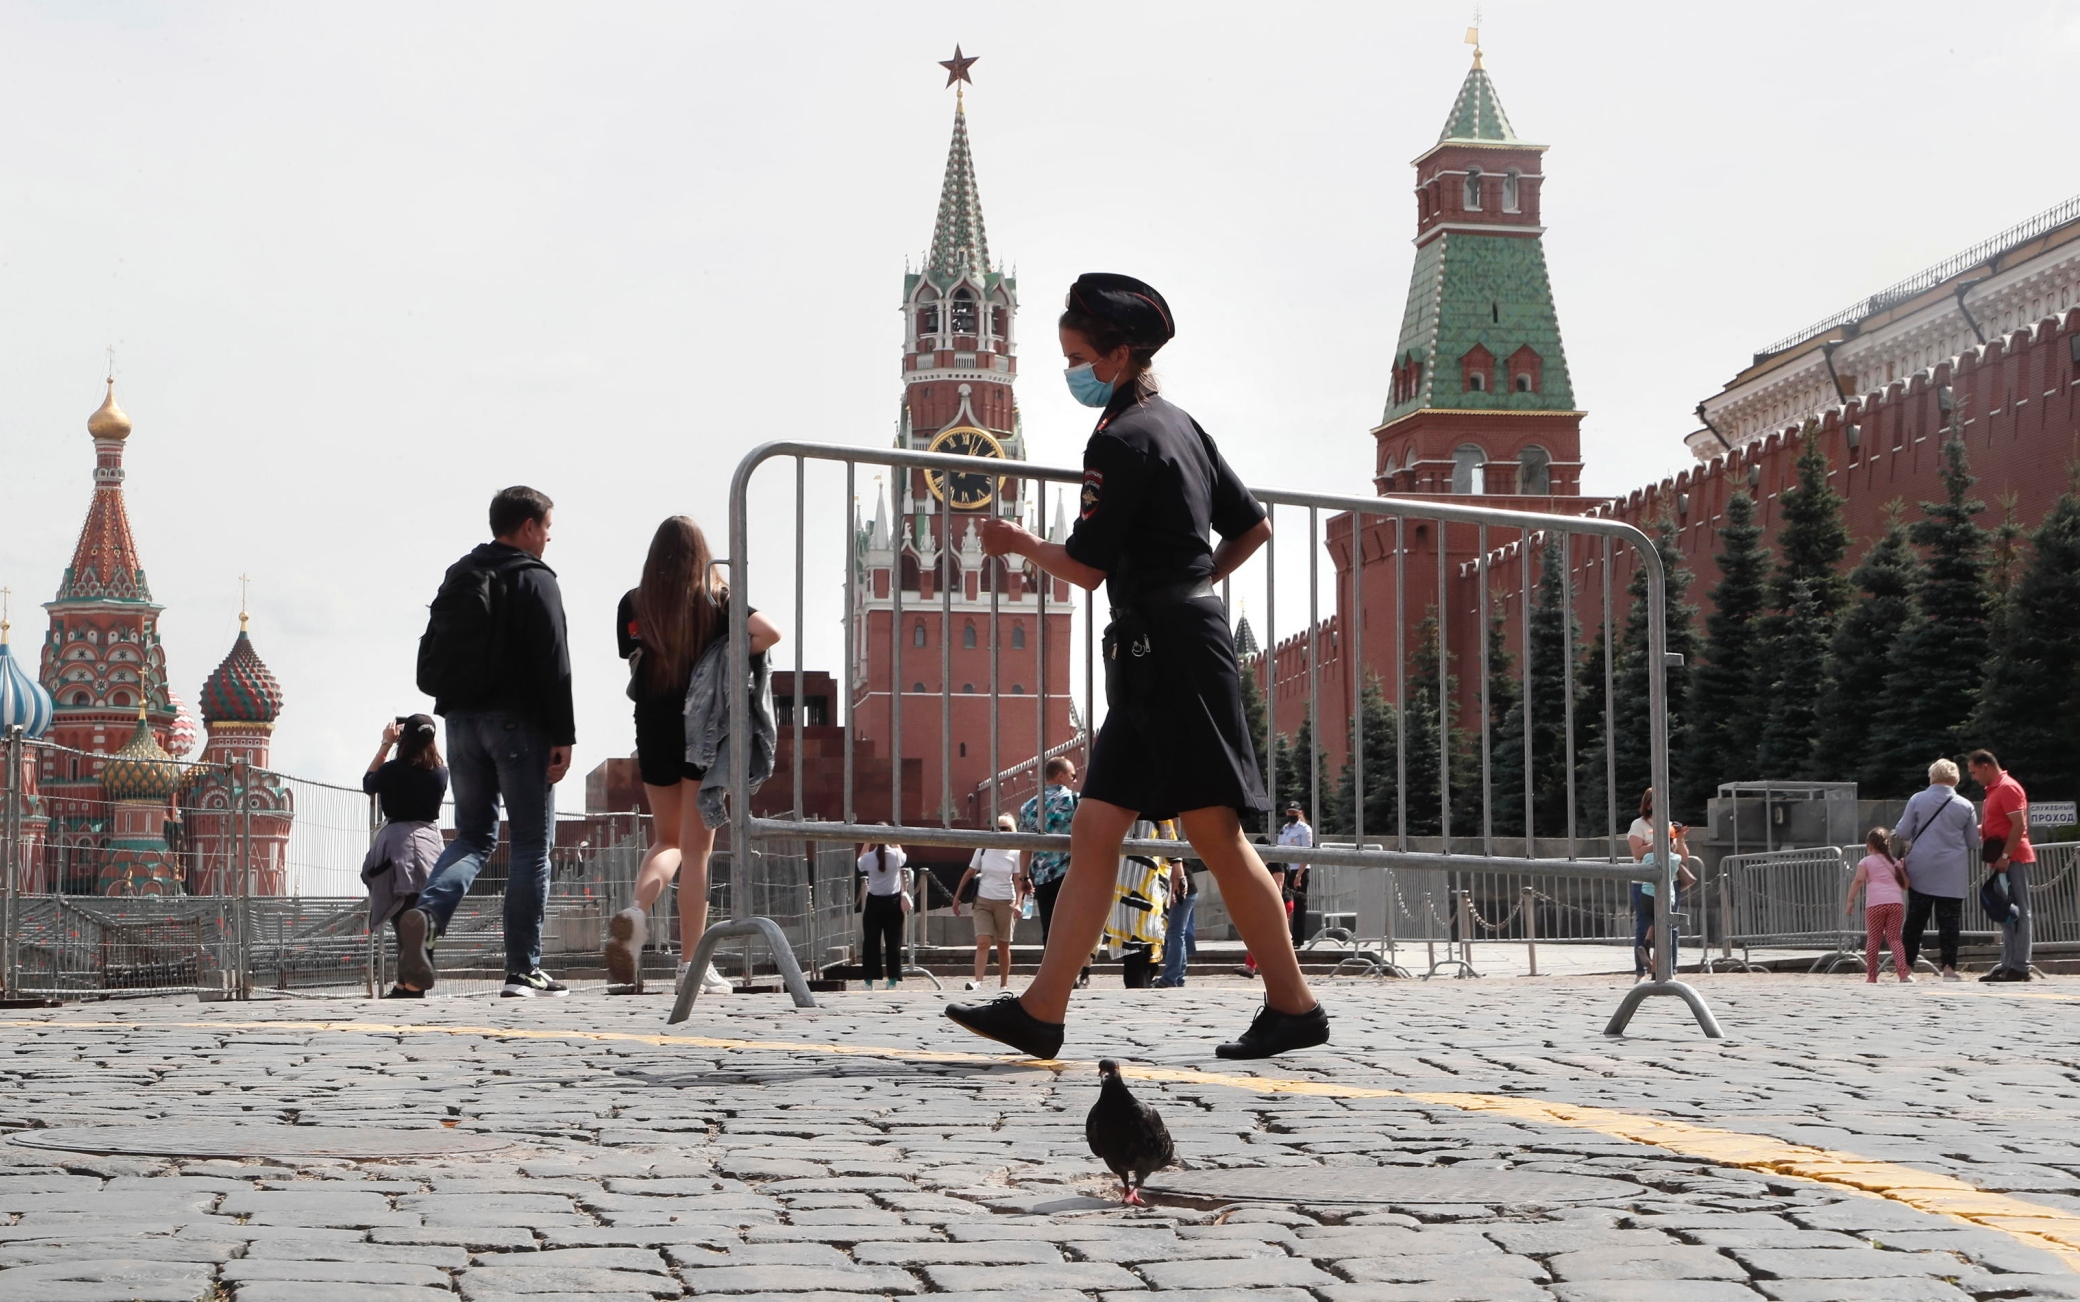 epa08583404 A female police officer wearing a protective face mask moves a temporary fencing on the Red Square in Moscow, Russia, 04 August 2020. Russian authorities continue to gradually ease restrictions imposed to prevent the spread of the pandemic COVID-19 disease caused by the SARS-CoV-2 coronavirus in the country.  EPA/MAXIM SHIPENKOV